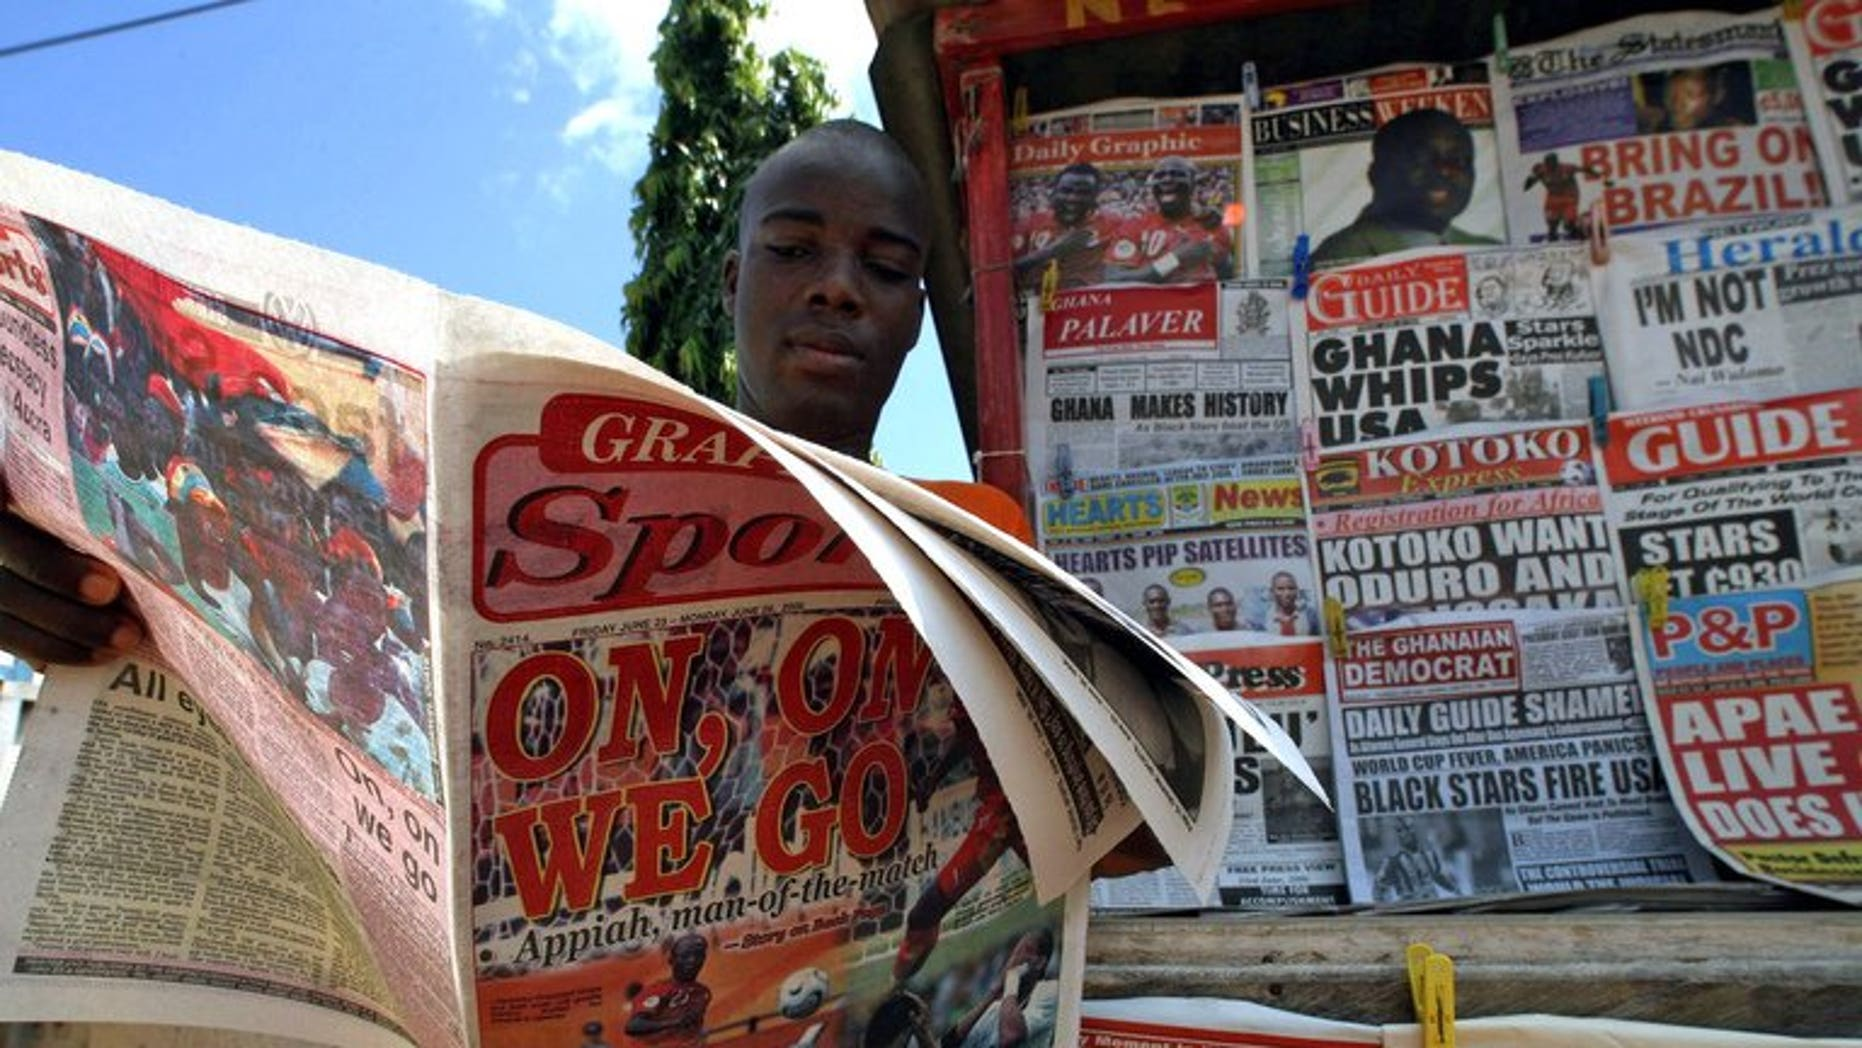 A man reads a newspaper on June 23, 2006 in Accra. A Ghanaian newspaper editor was released Thursday after serving a controversial 10-day jail term ordered by the west African nation's supreme court for criticising the judges' handling of a dispute over last year's presidential election.